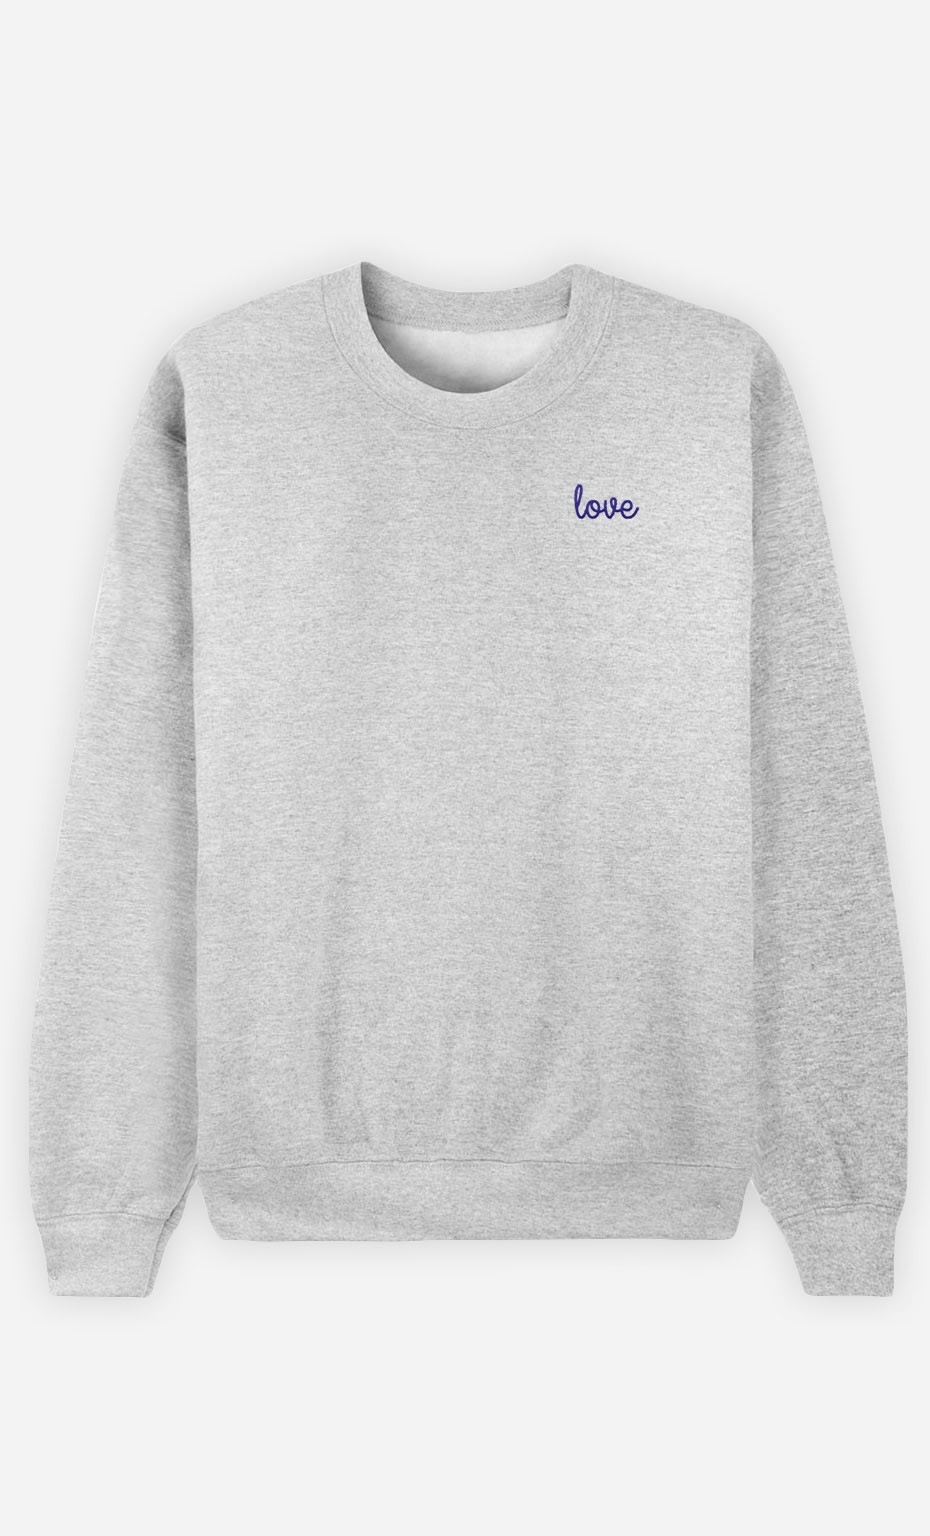 Sweat Love - brodé